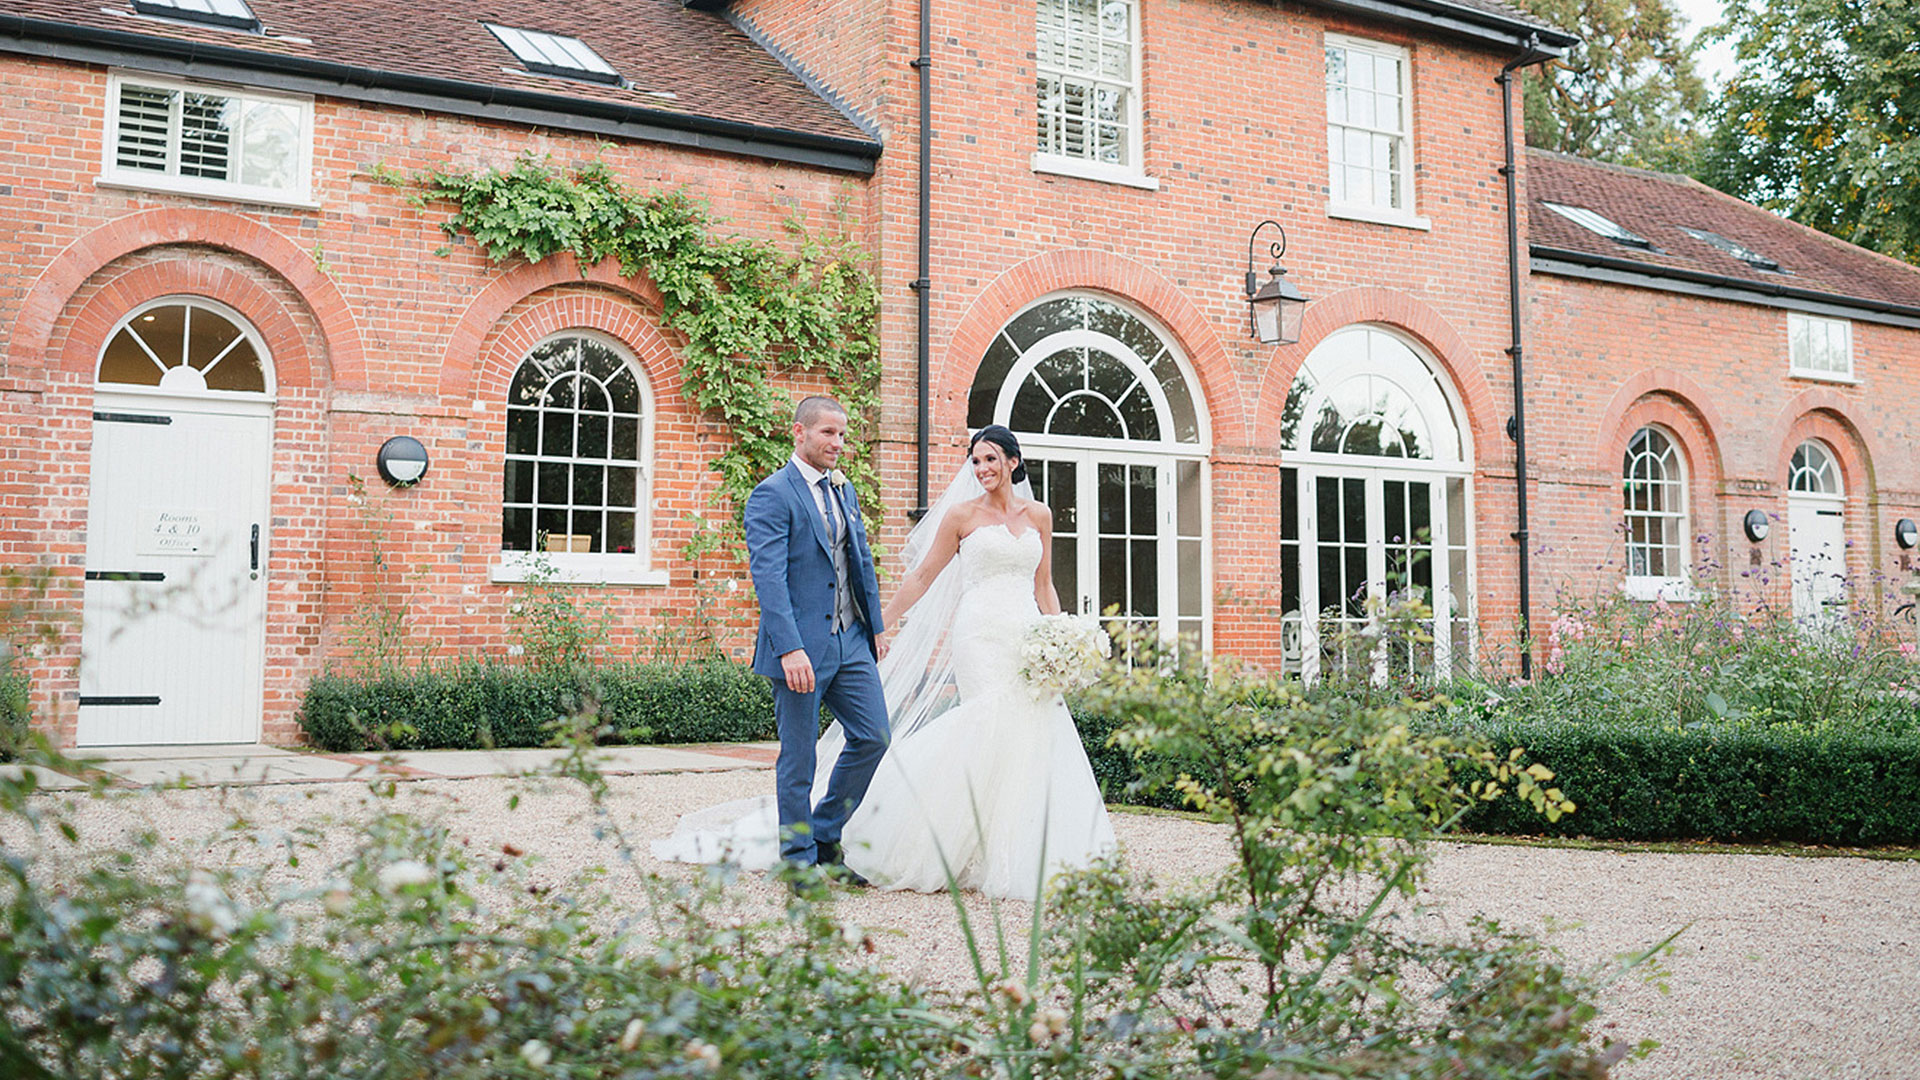 Bride and groom walk together at Gaynes Park stunningly contemporary wedding guest accommodation